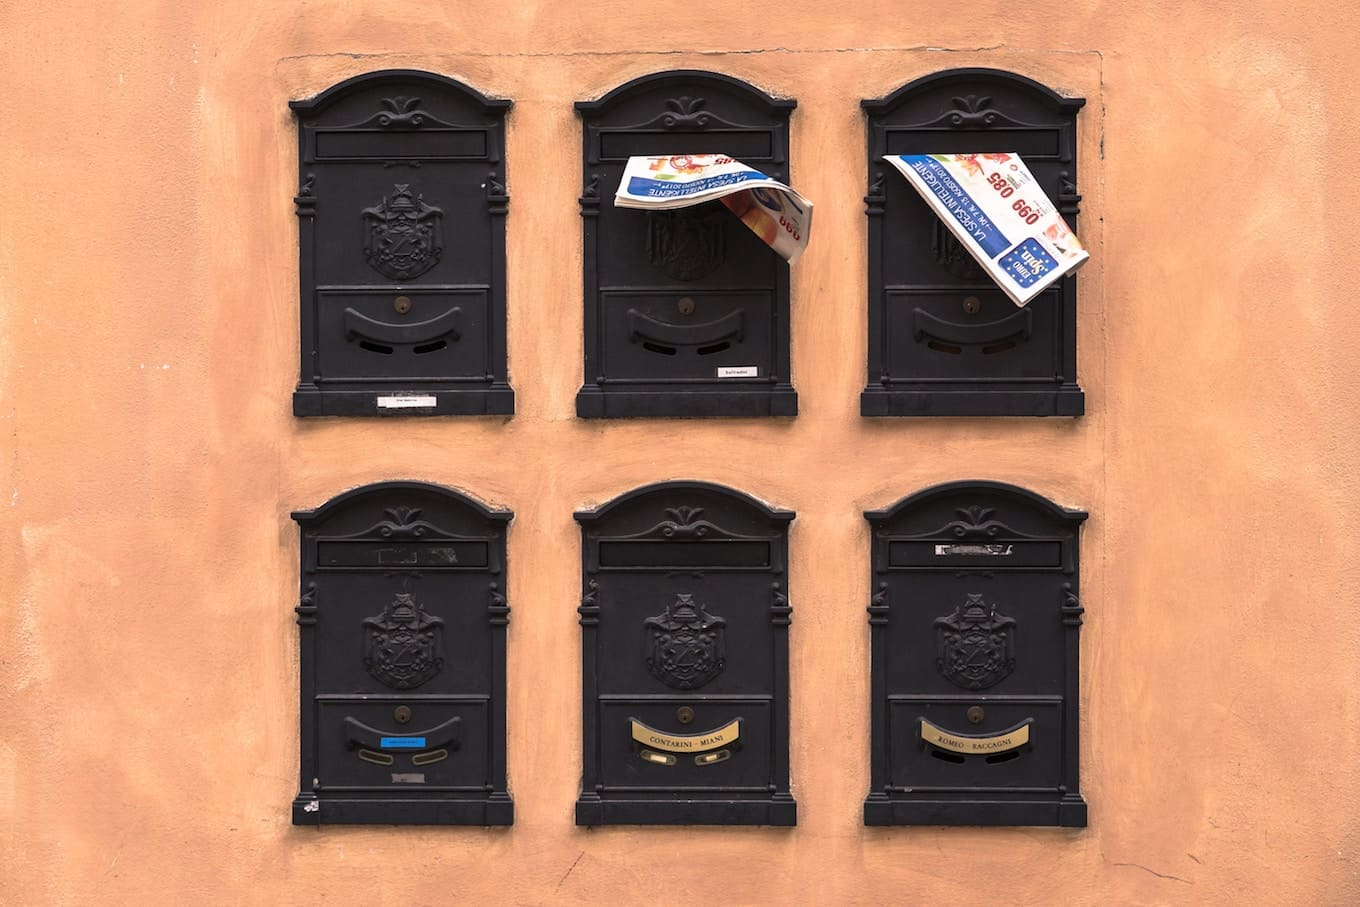 Six mailboxes on a wall